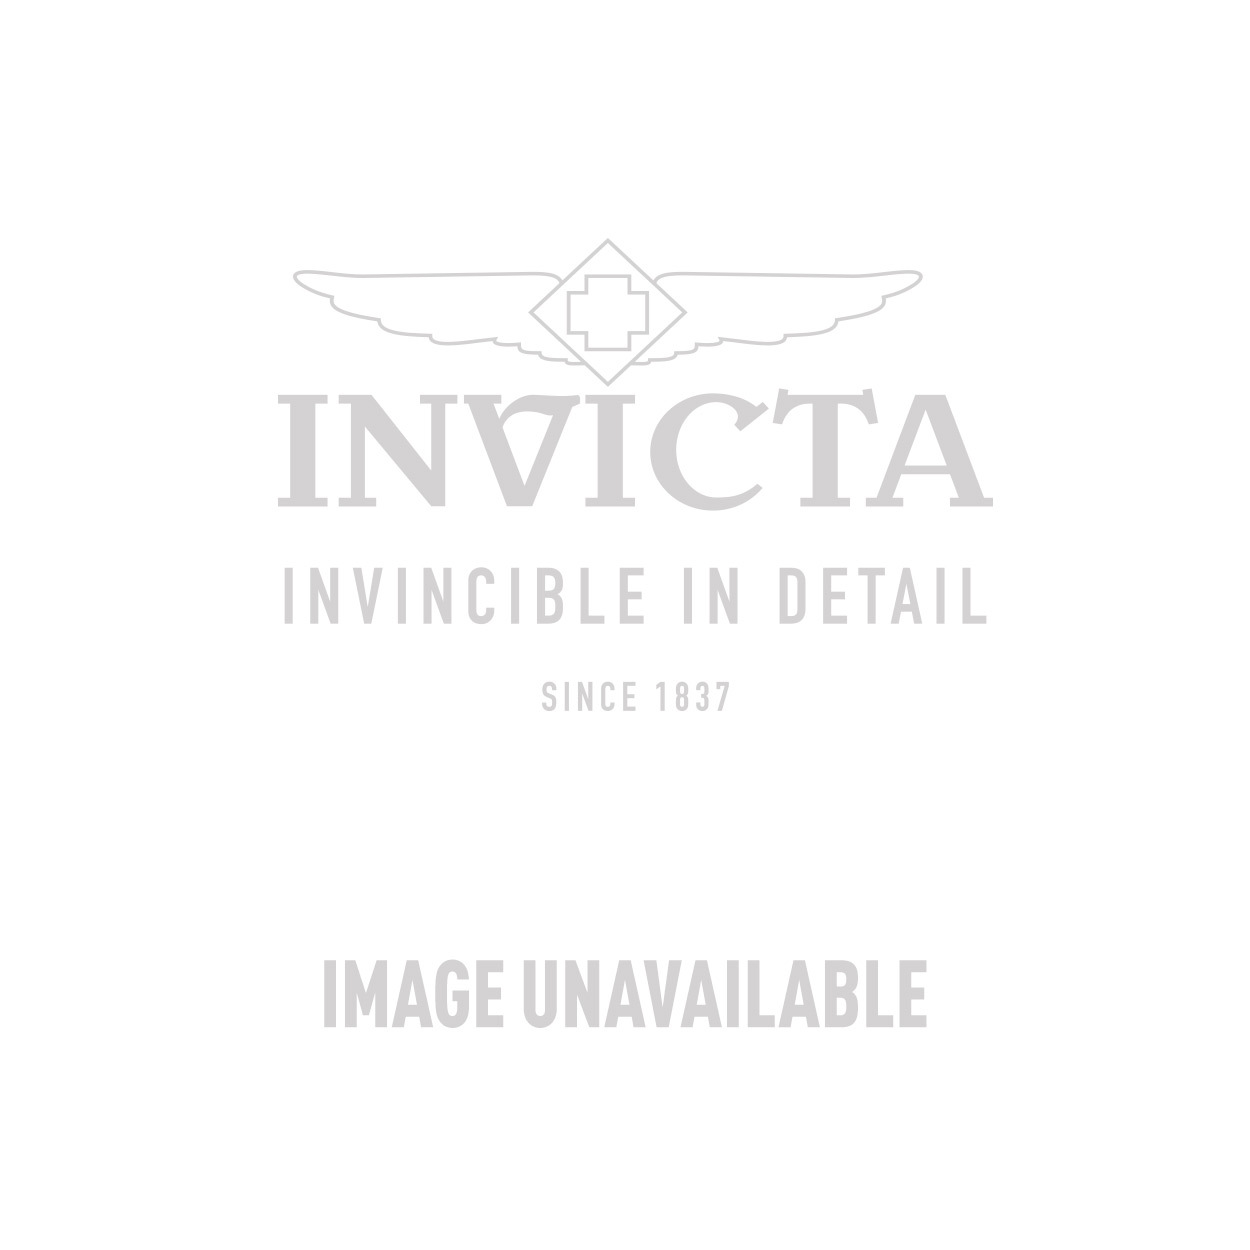 Invicta Pro Diver Swiss Movement Quartz Watch - Stainless Steel case Stainless Steel band - Model 12565